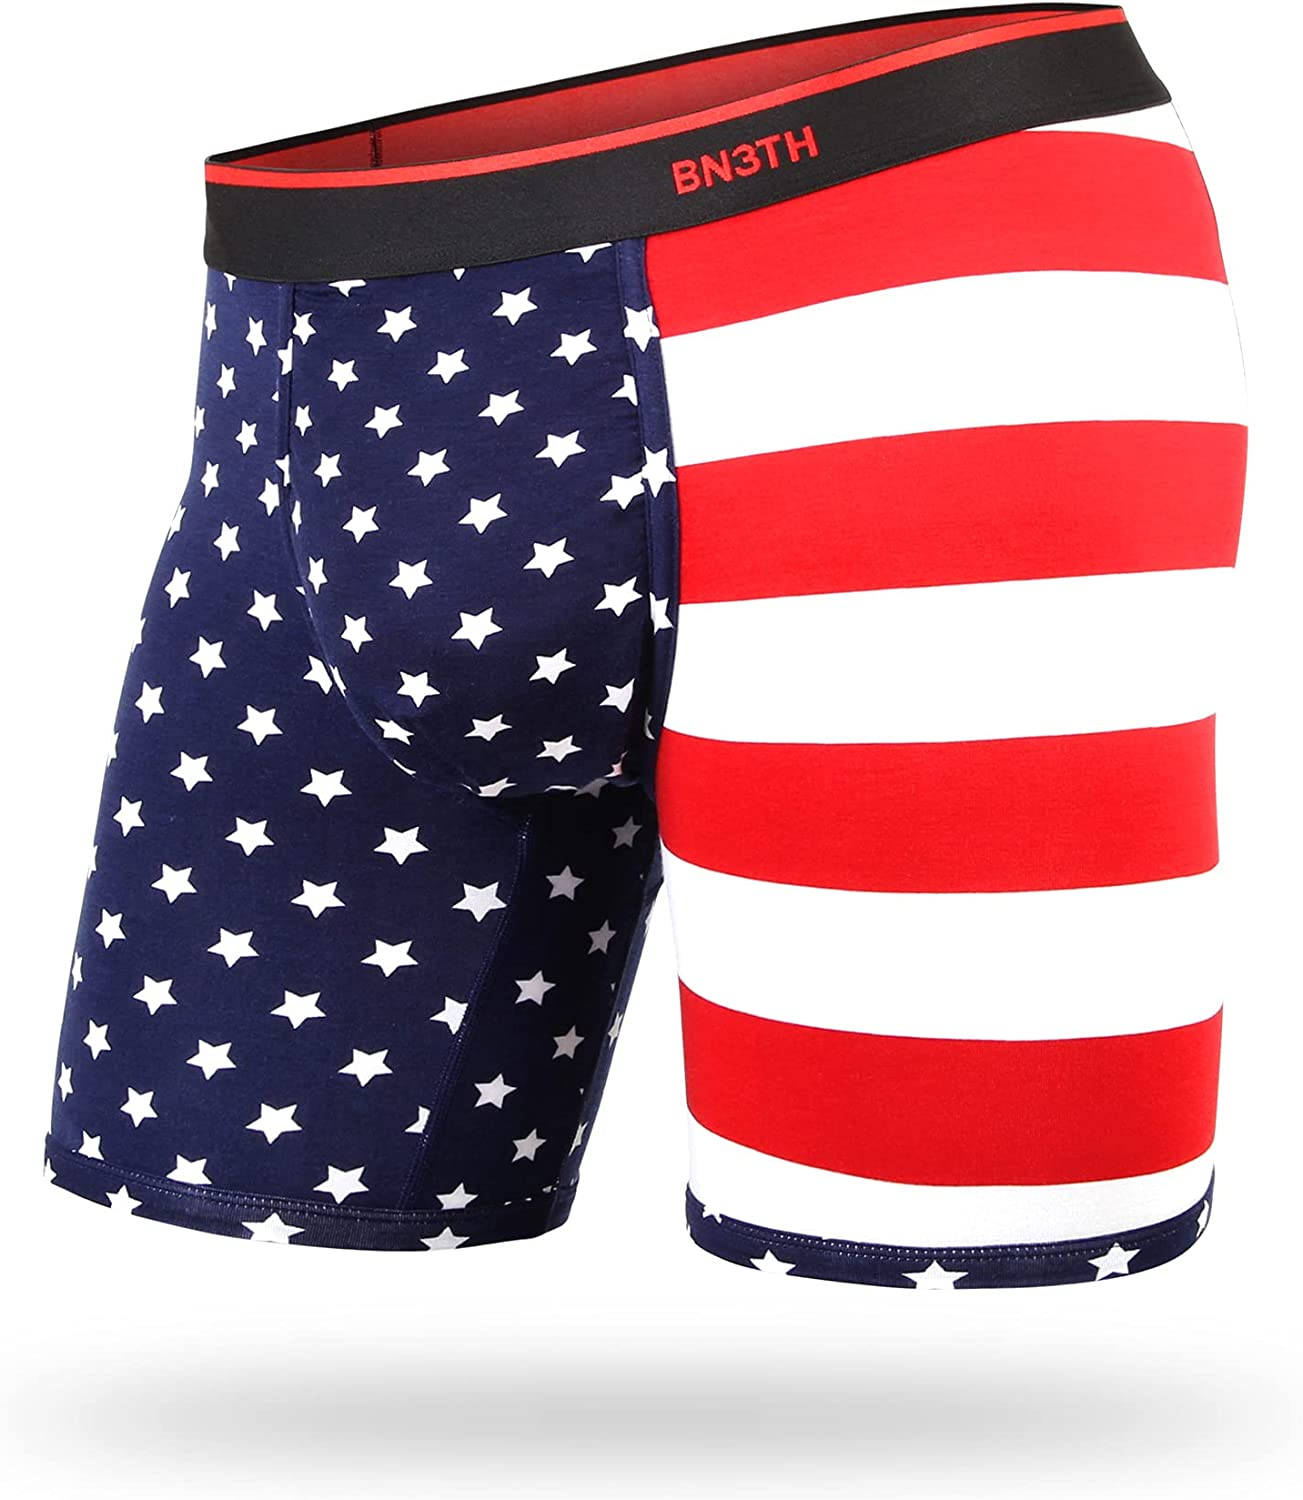 BN3TH Men's Classic Boxer Brief Prints Collection - Breathable Underwear with Three-Dimensional MyPakage Pouch